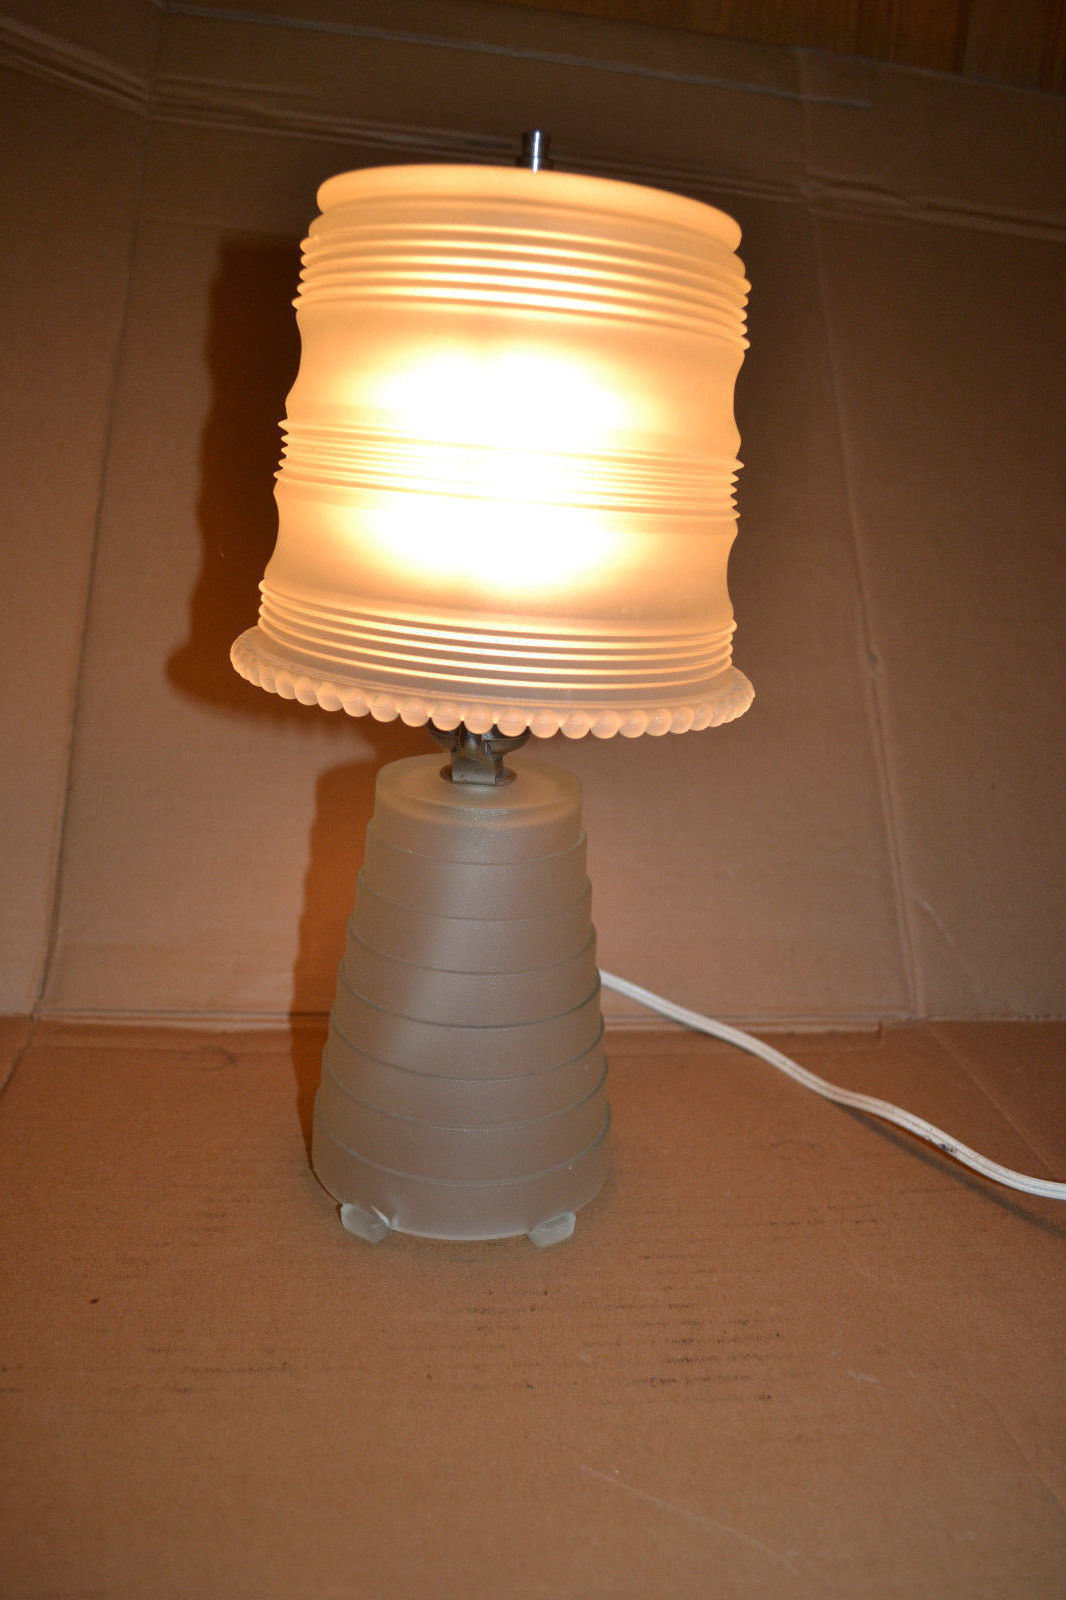 Art Glass Vanity Light : Vintage 1930-40 s Art Deco frosted Glass Table Vanity Lamp Light Glass shade - Table Lamps